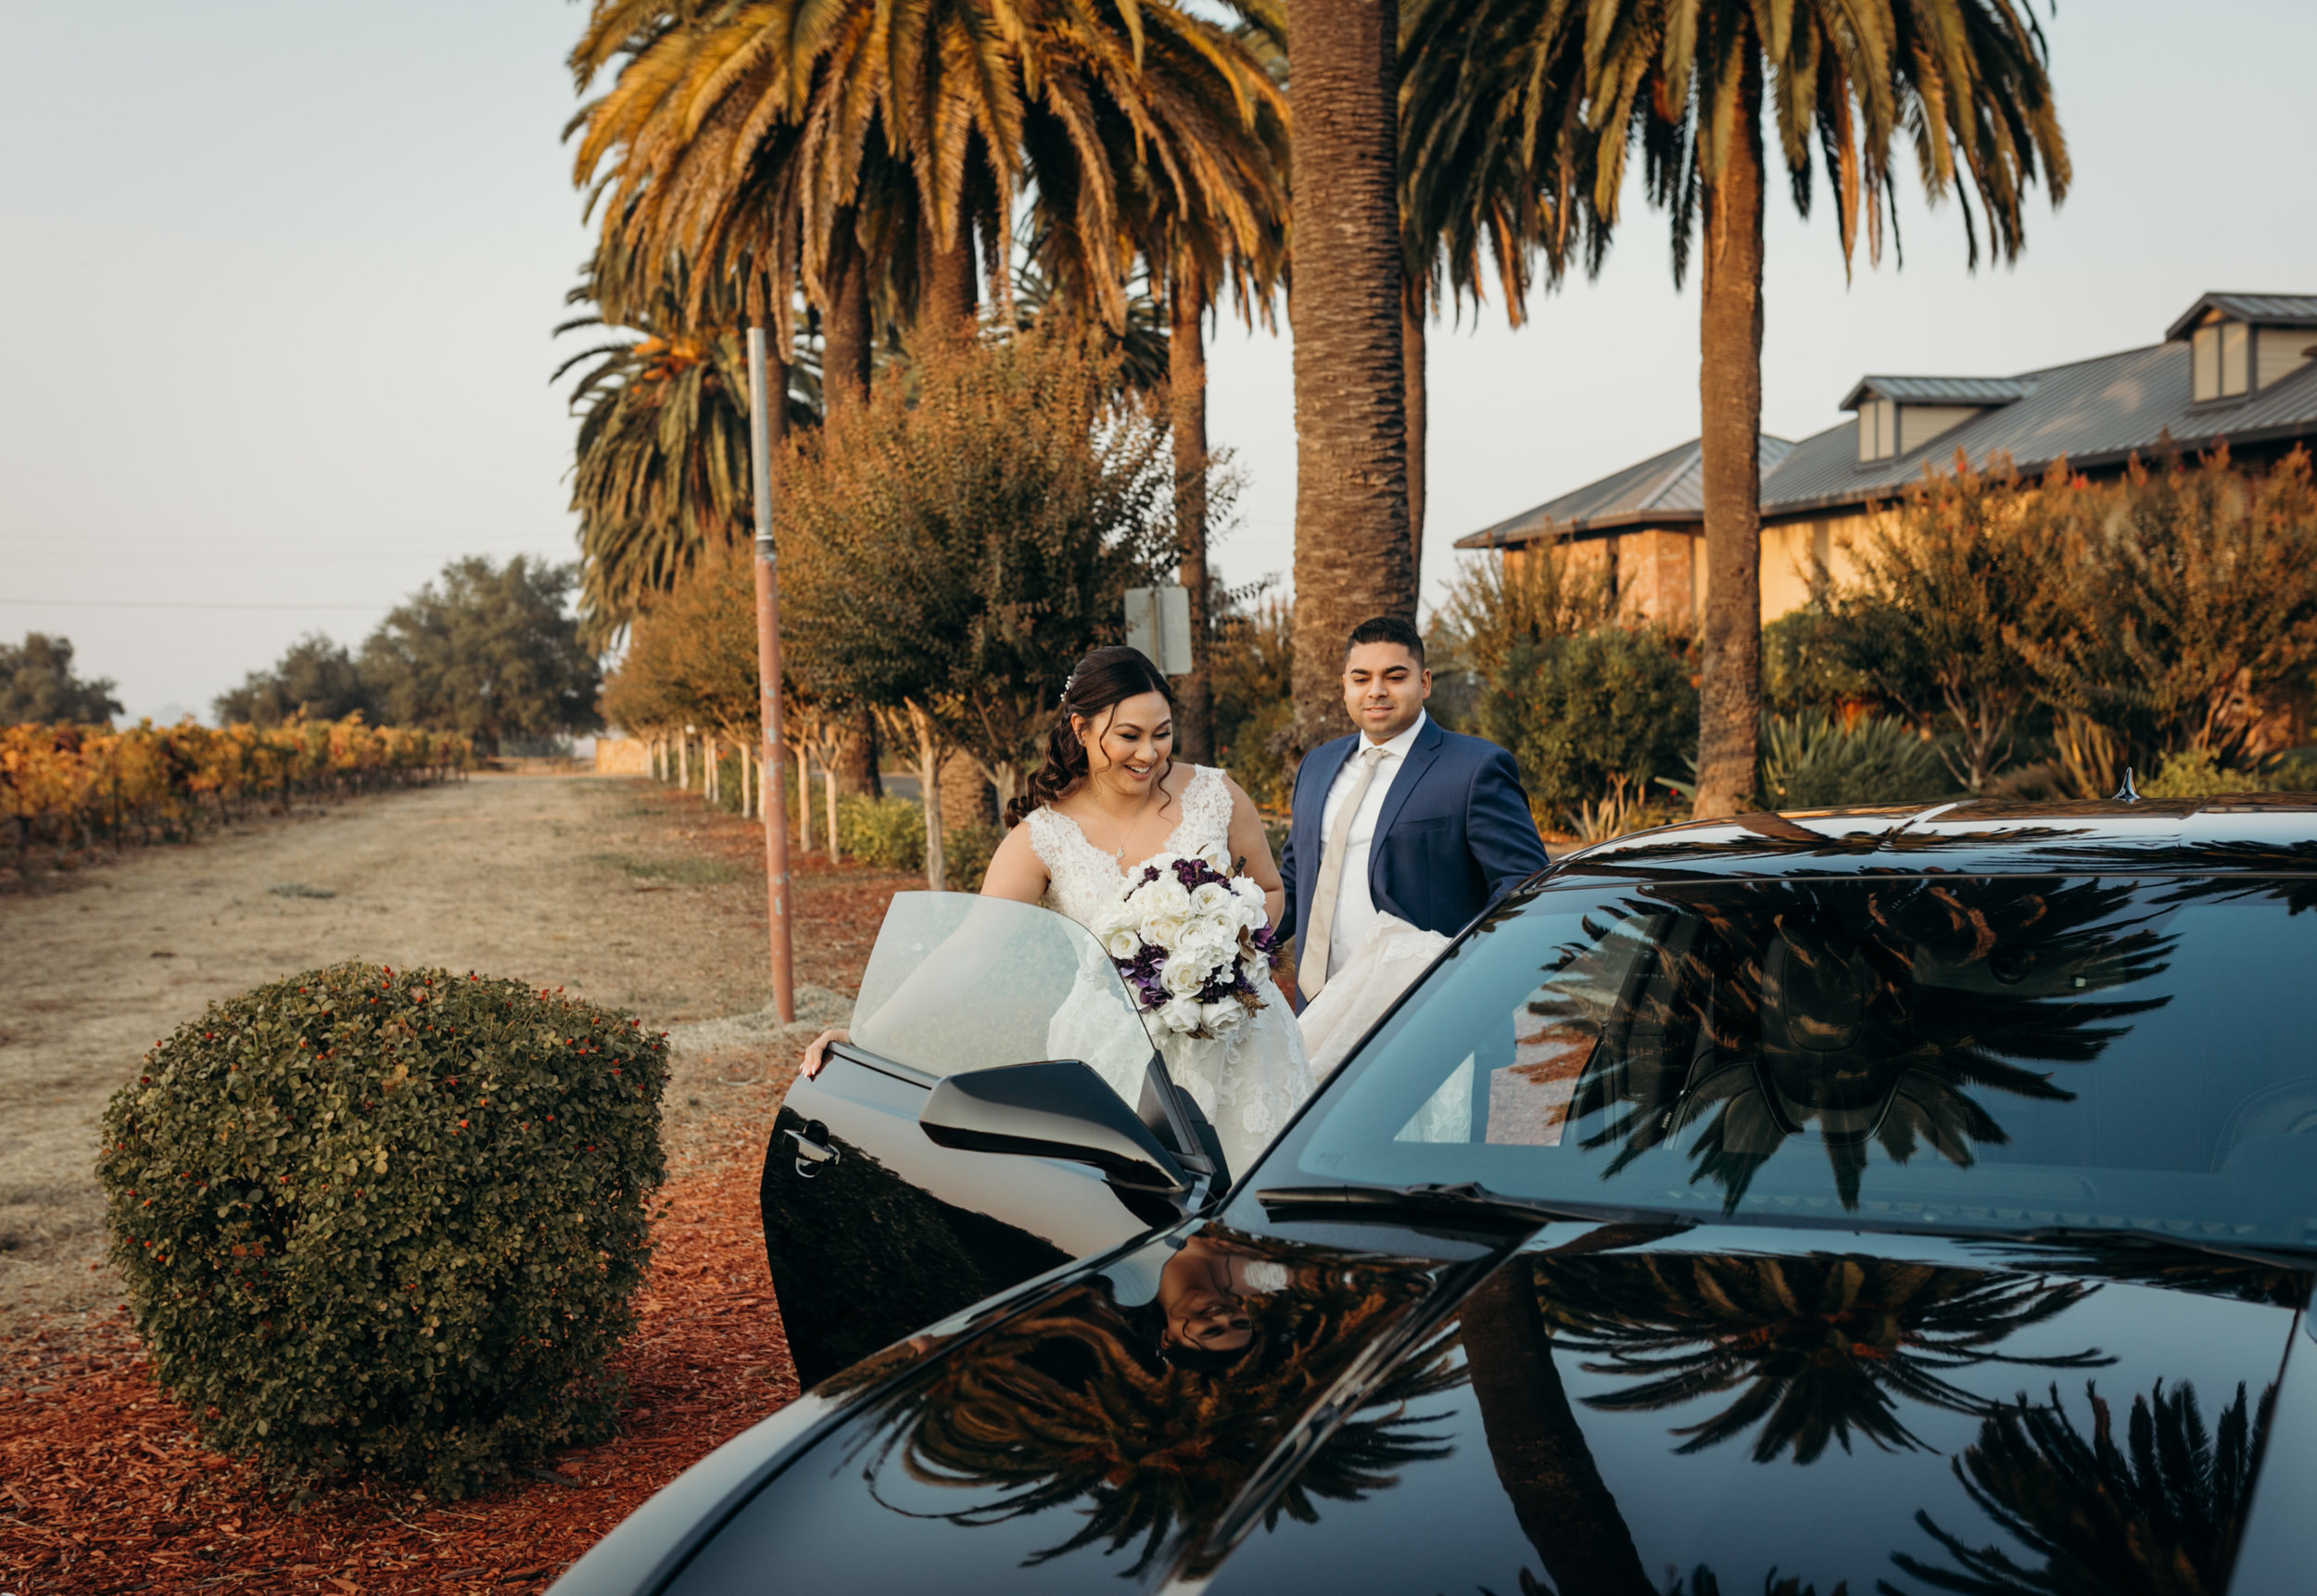 Bride and Groom Mustang Palm Event Center